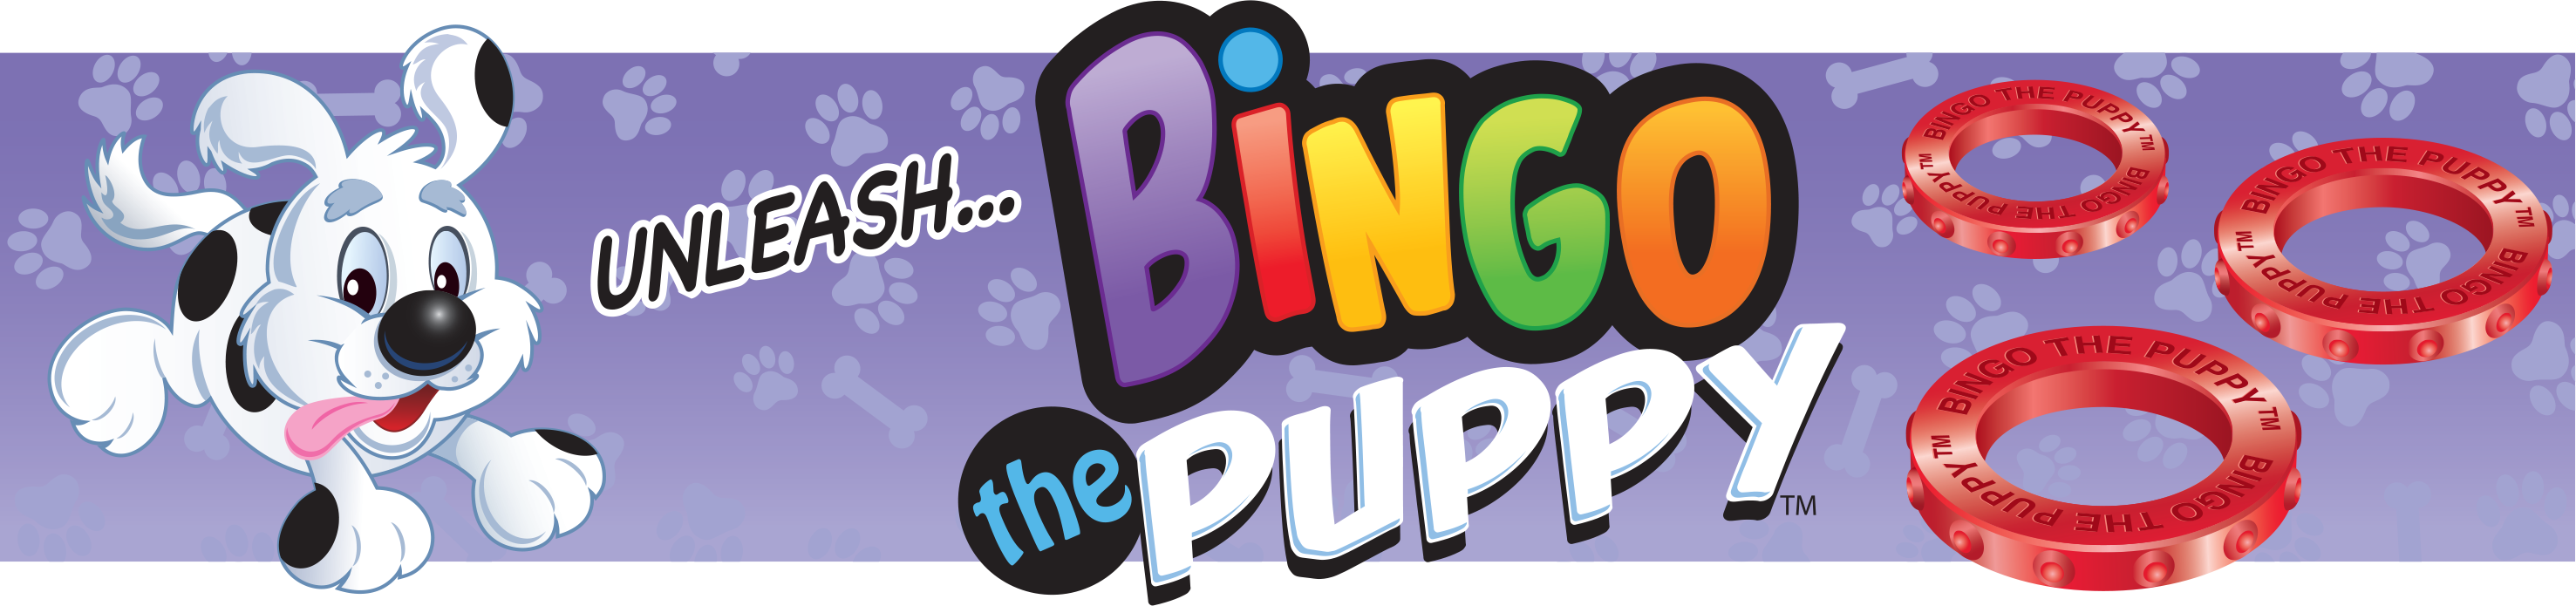 Bingo the Puppy